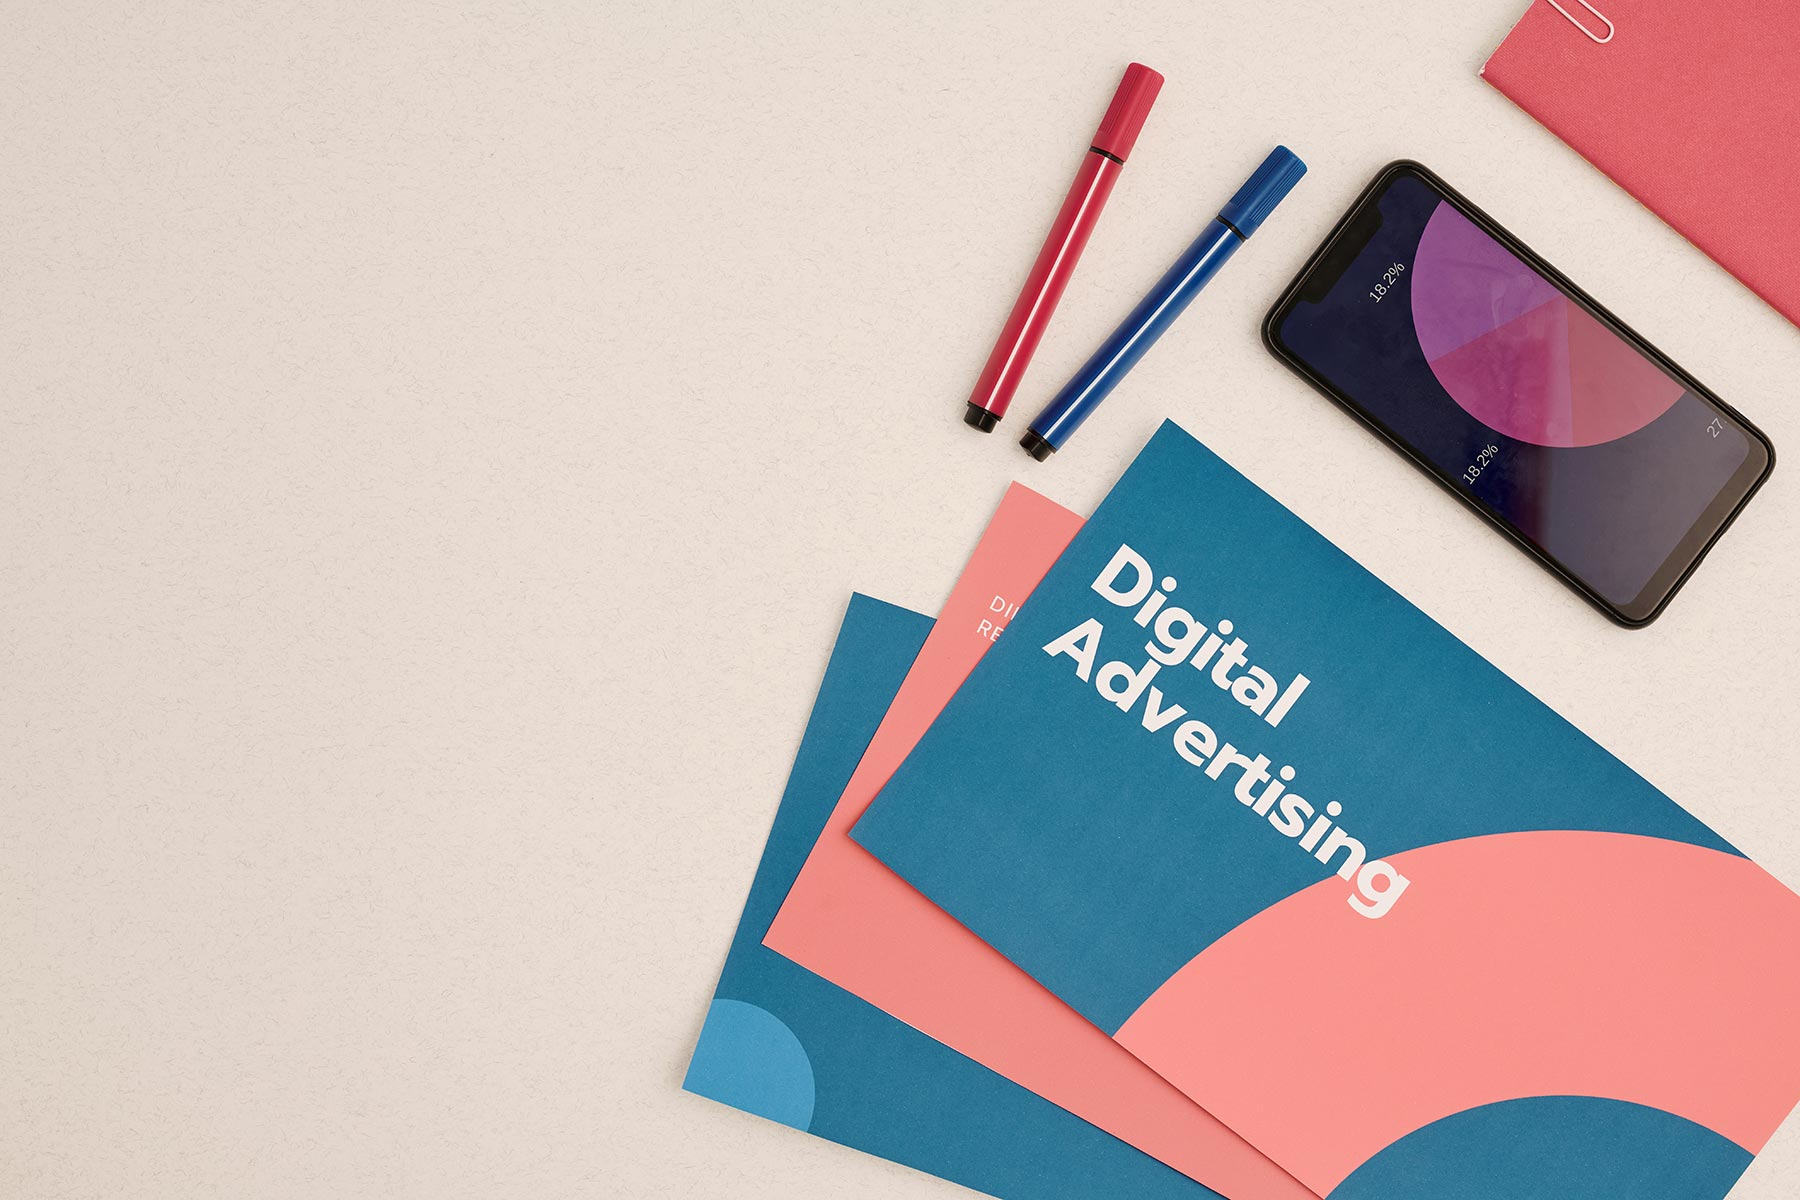 flat-layout-of-digital-advertising-brochures-and-p-R6WHKM8.jpg